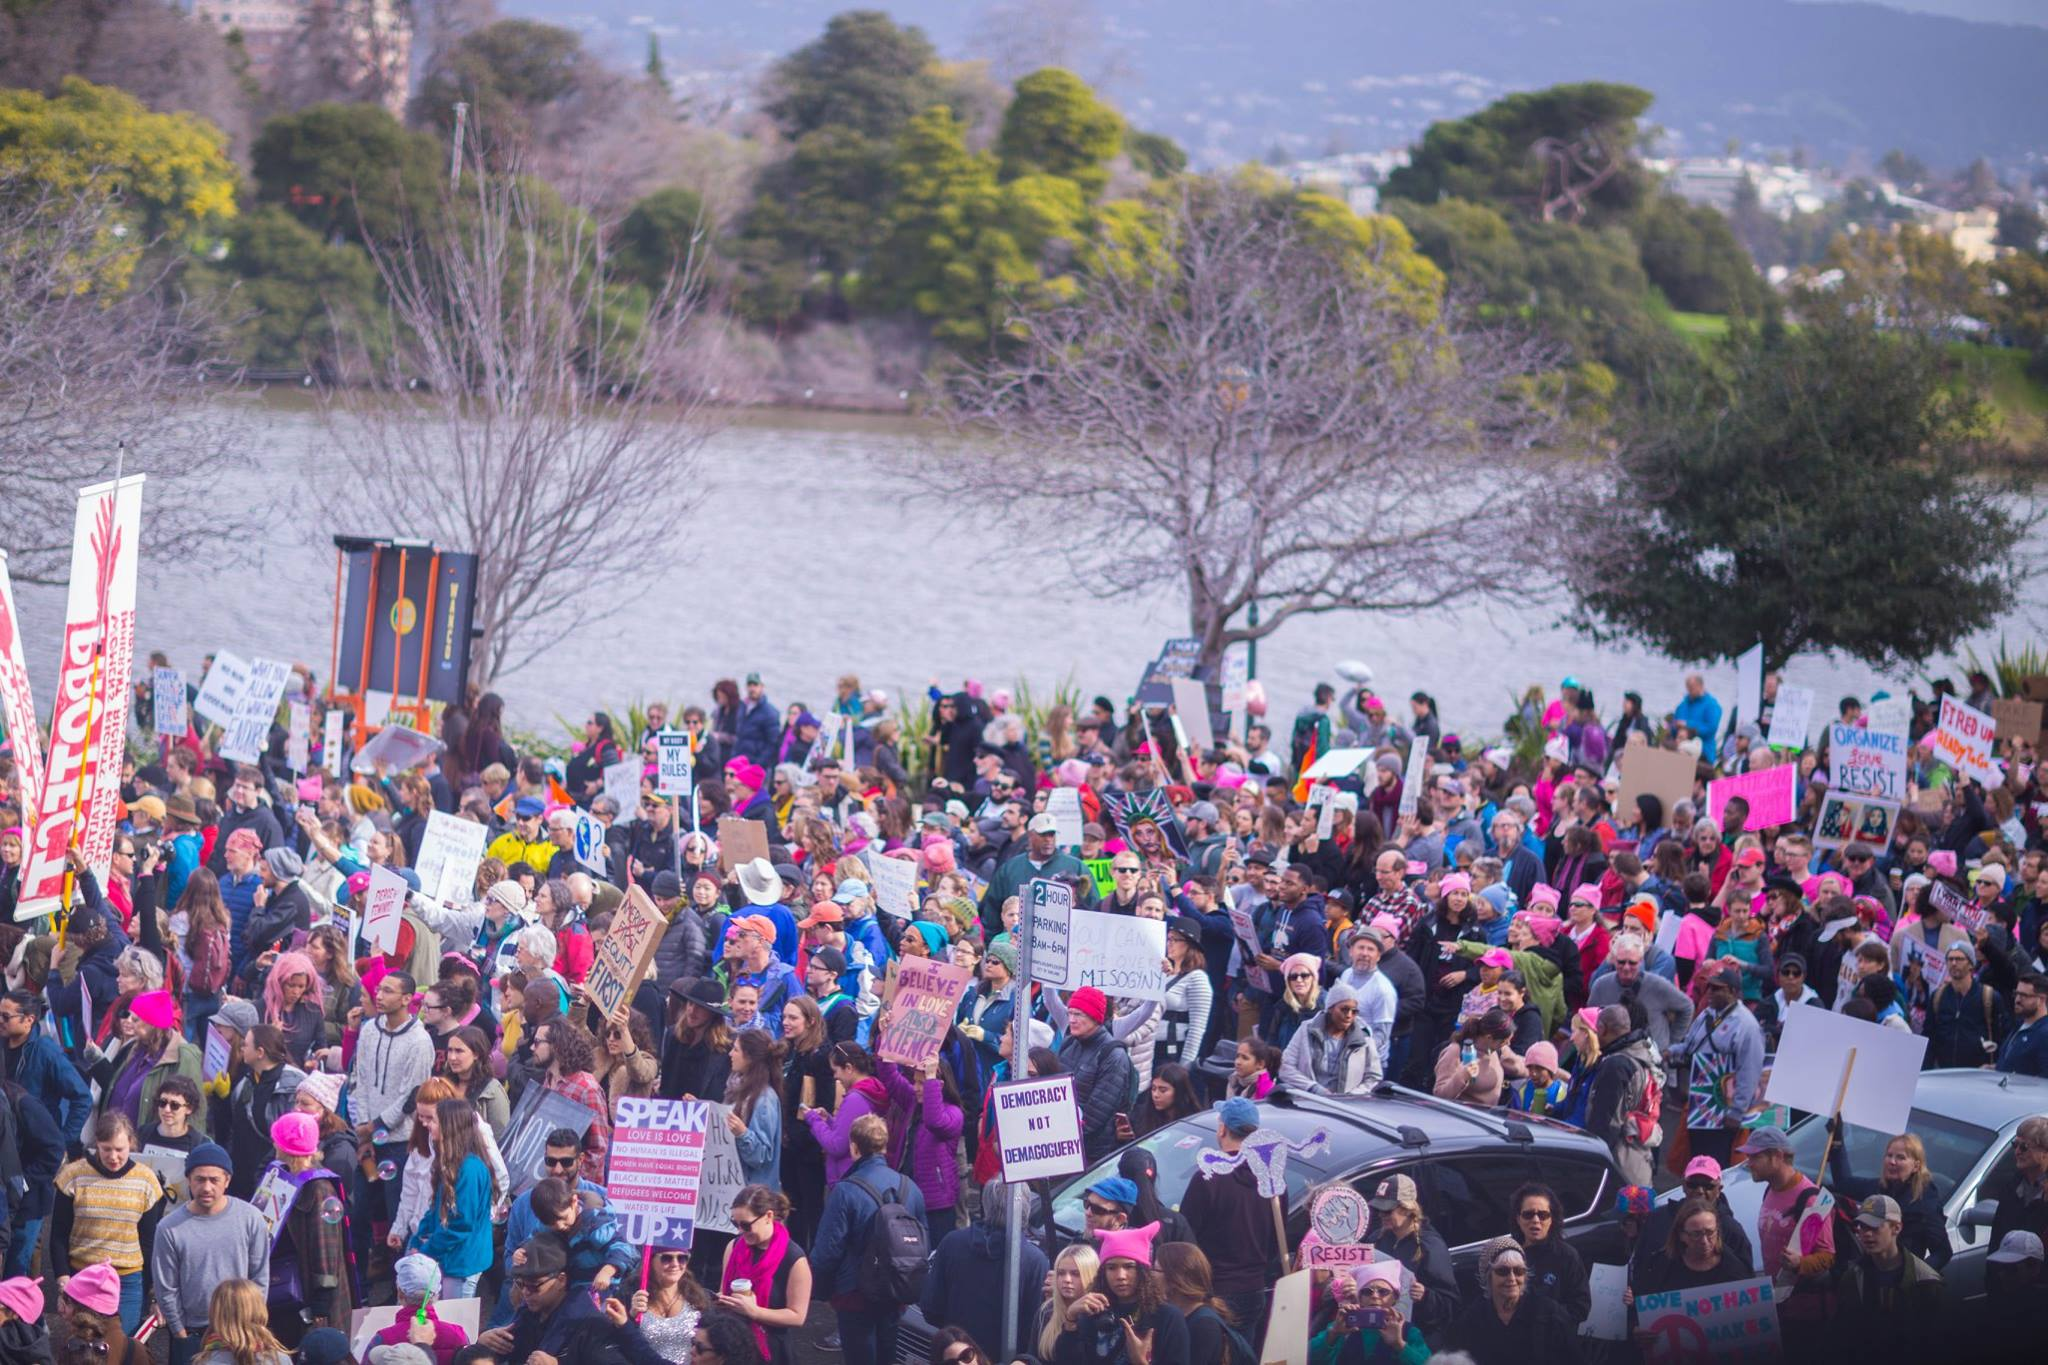 Protestors at Lake Merritt, California. Credit: Nicole Naramura